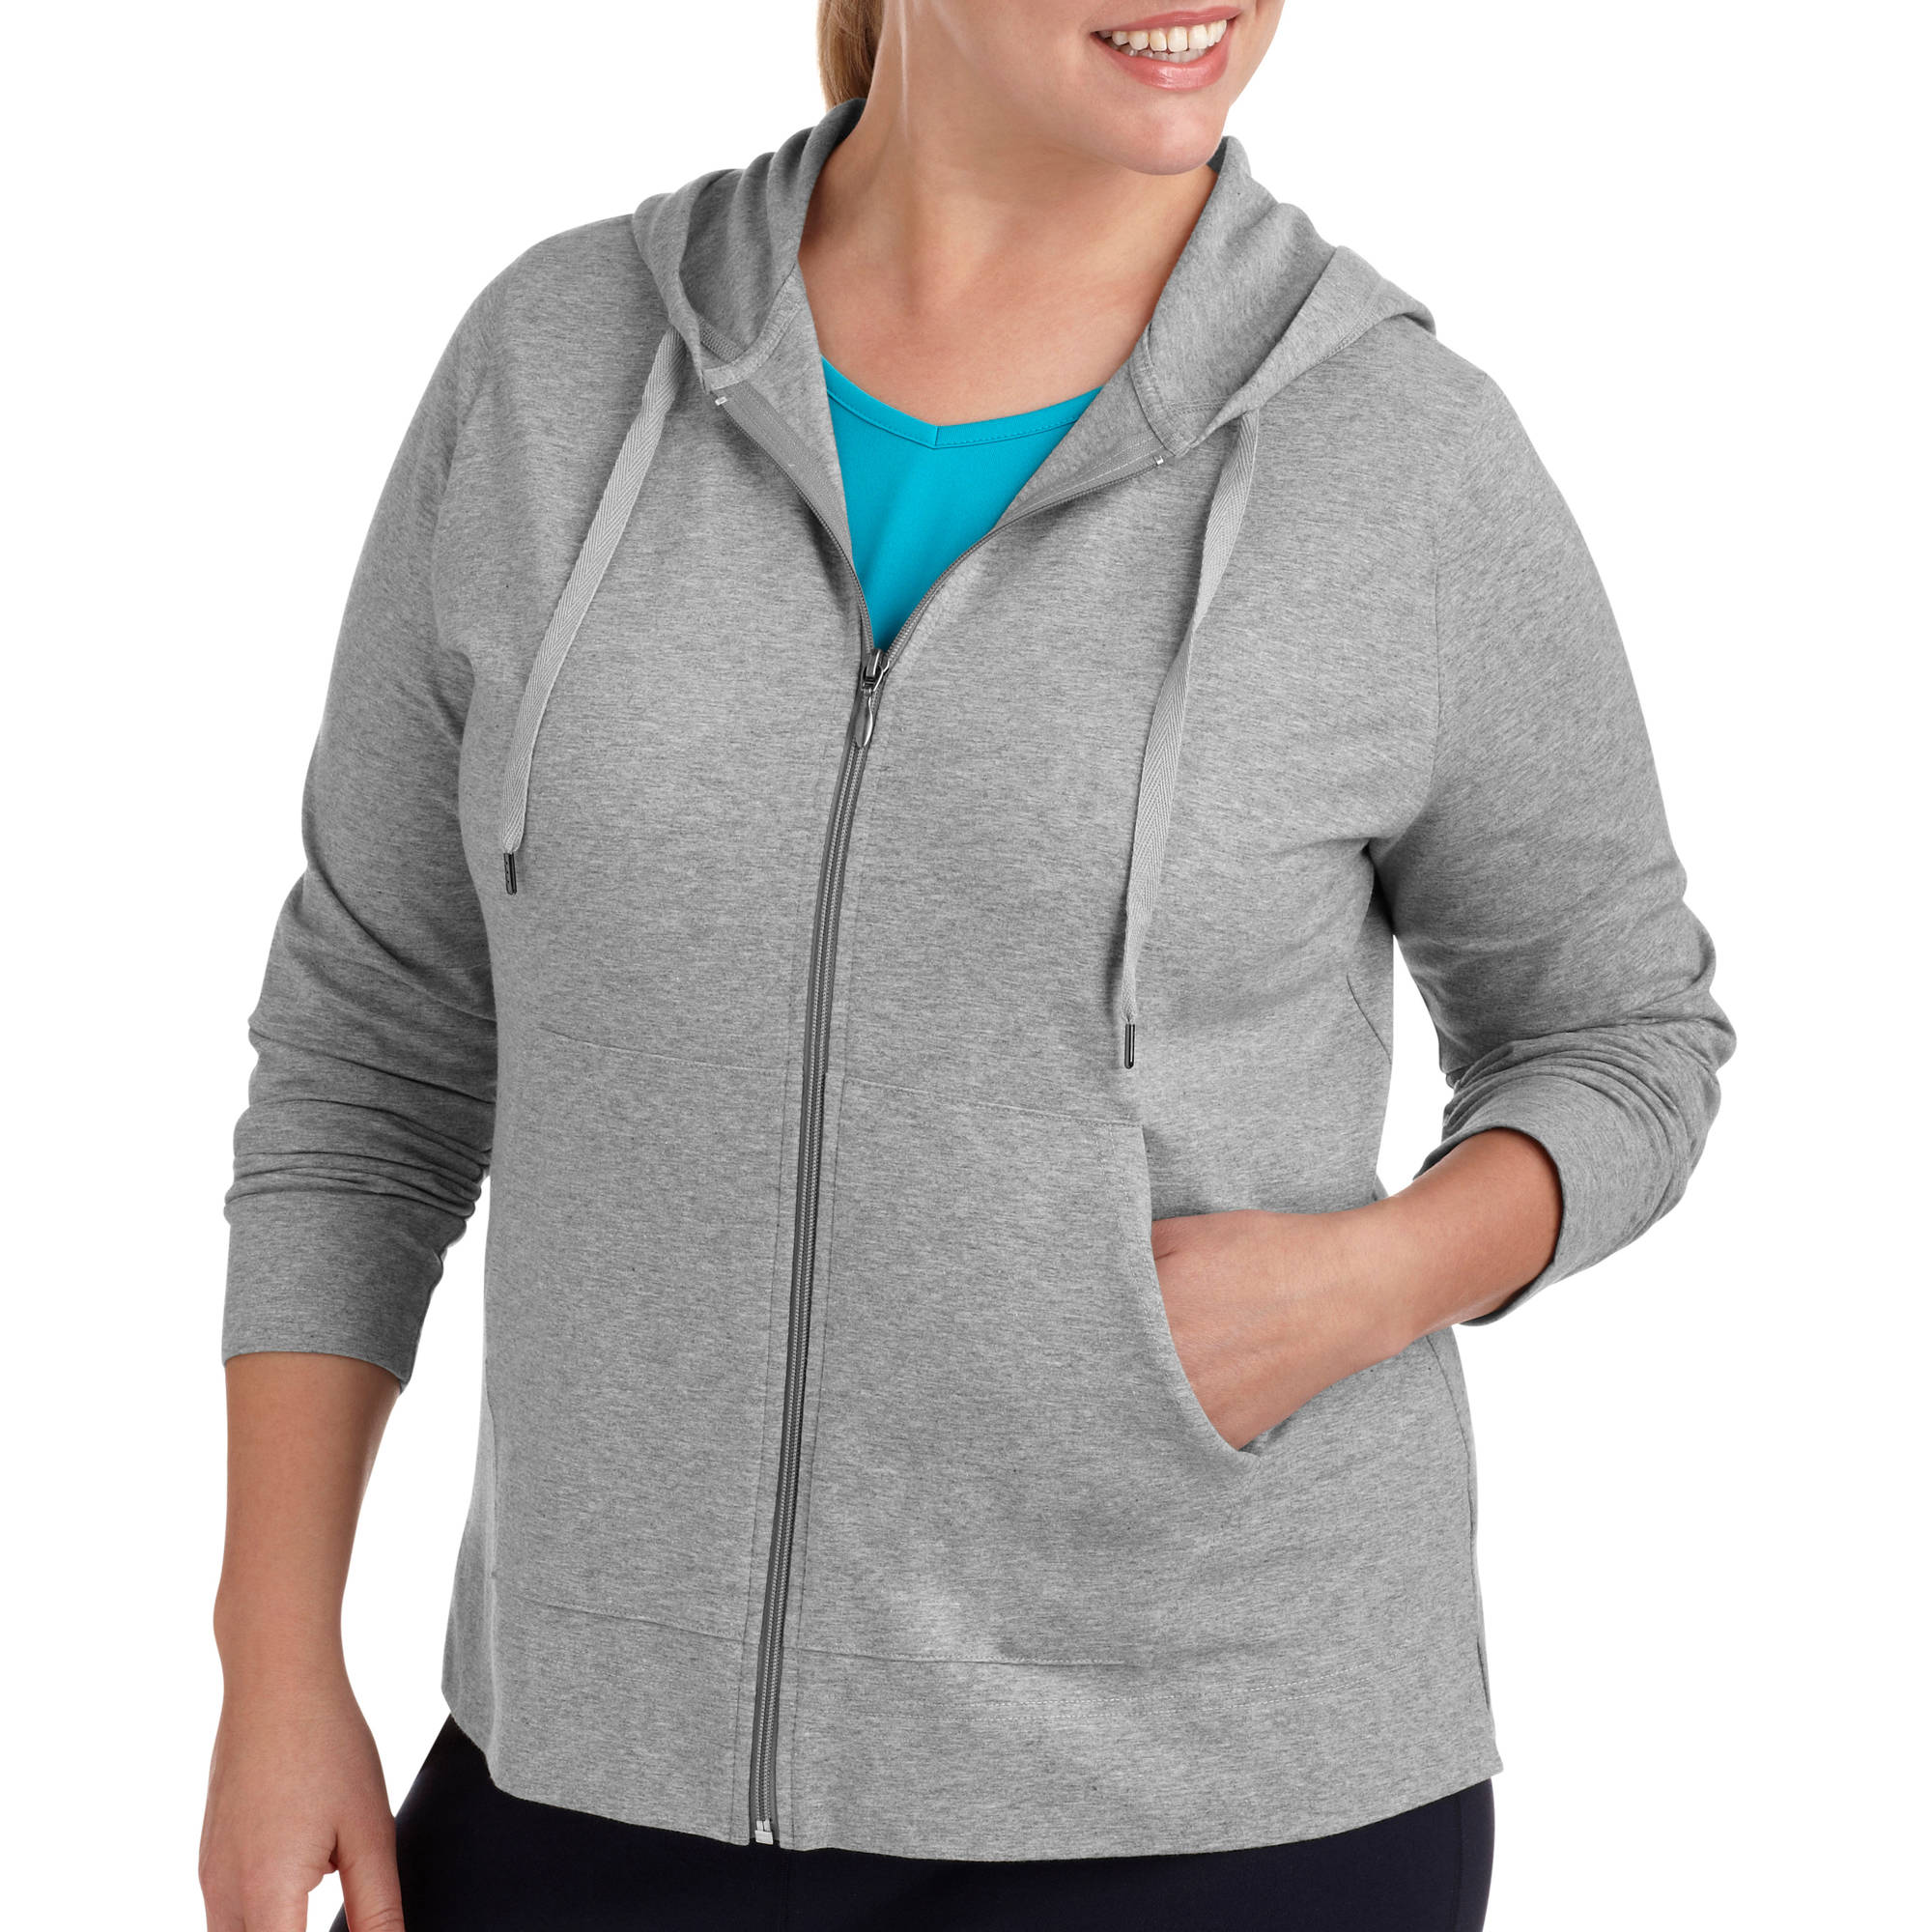 e0a192ba326 Womens Plus Size Dri More Zip Up Hoodie